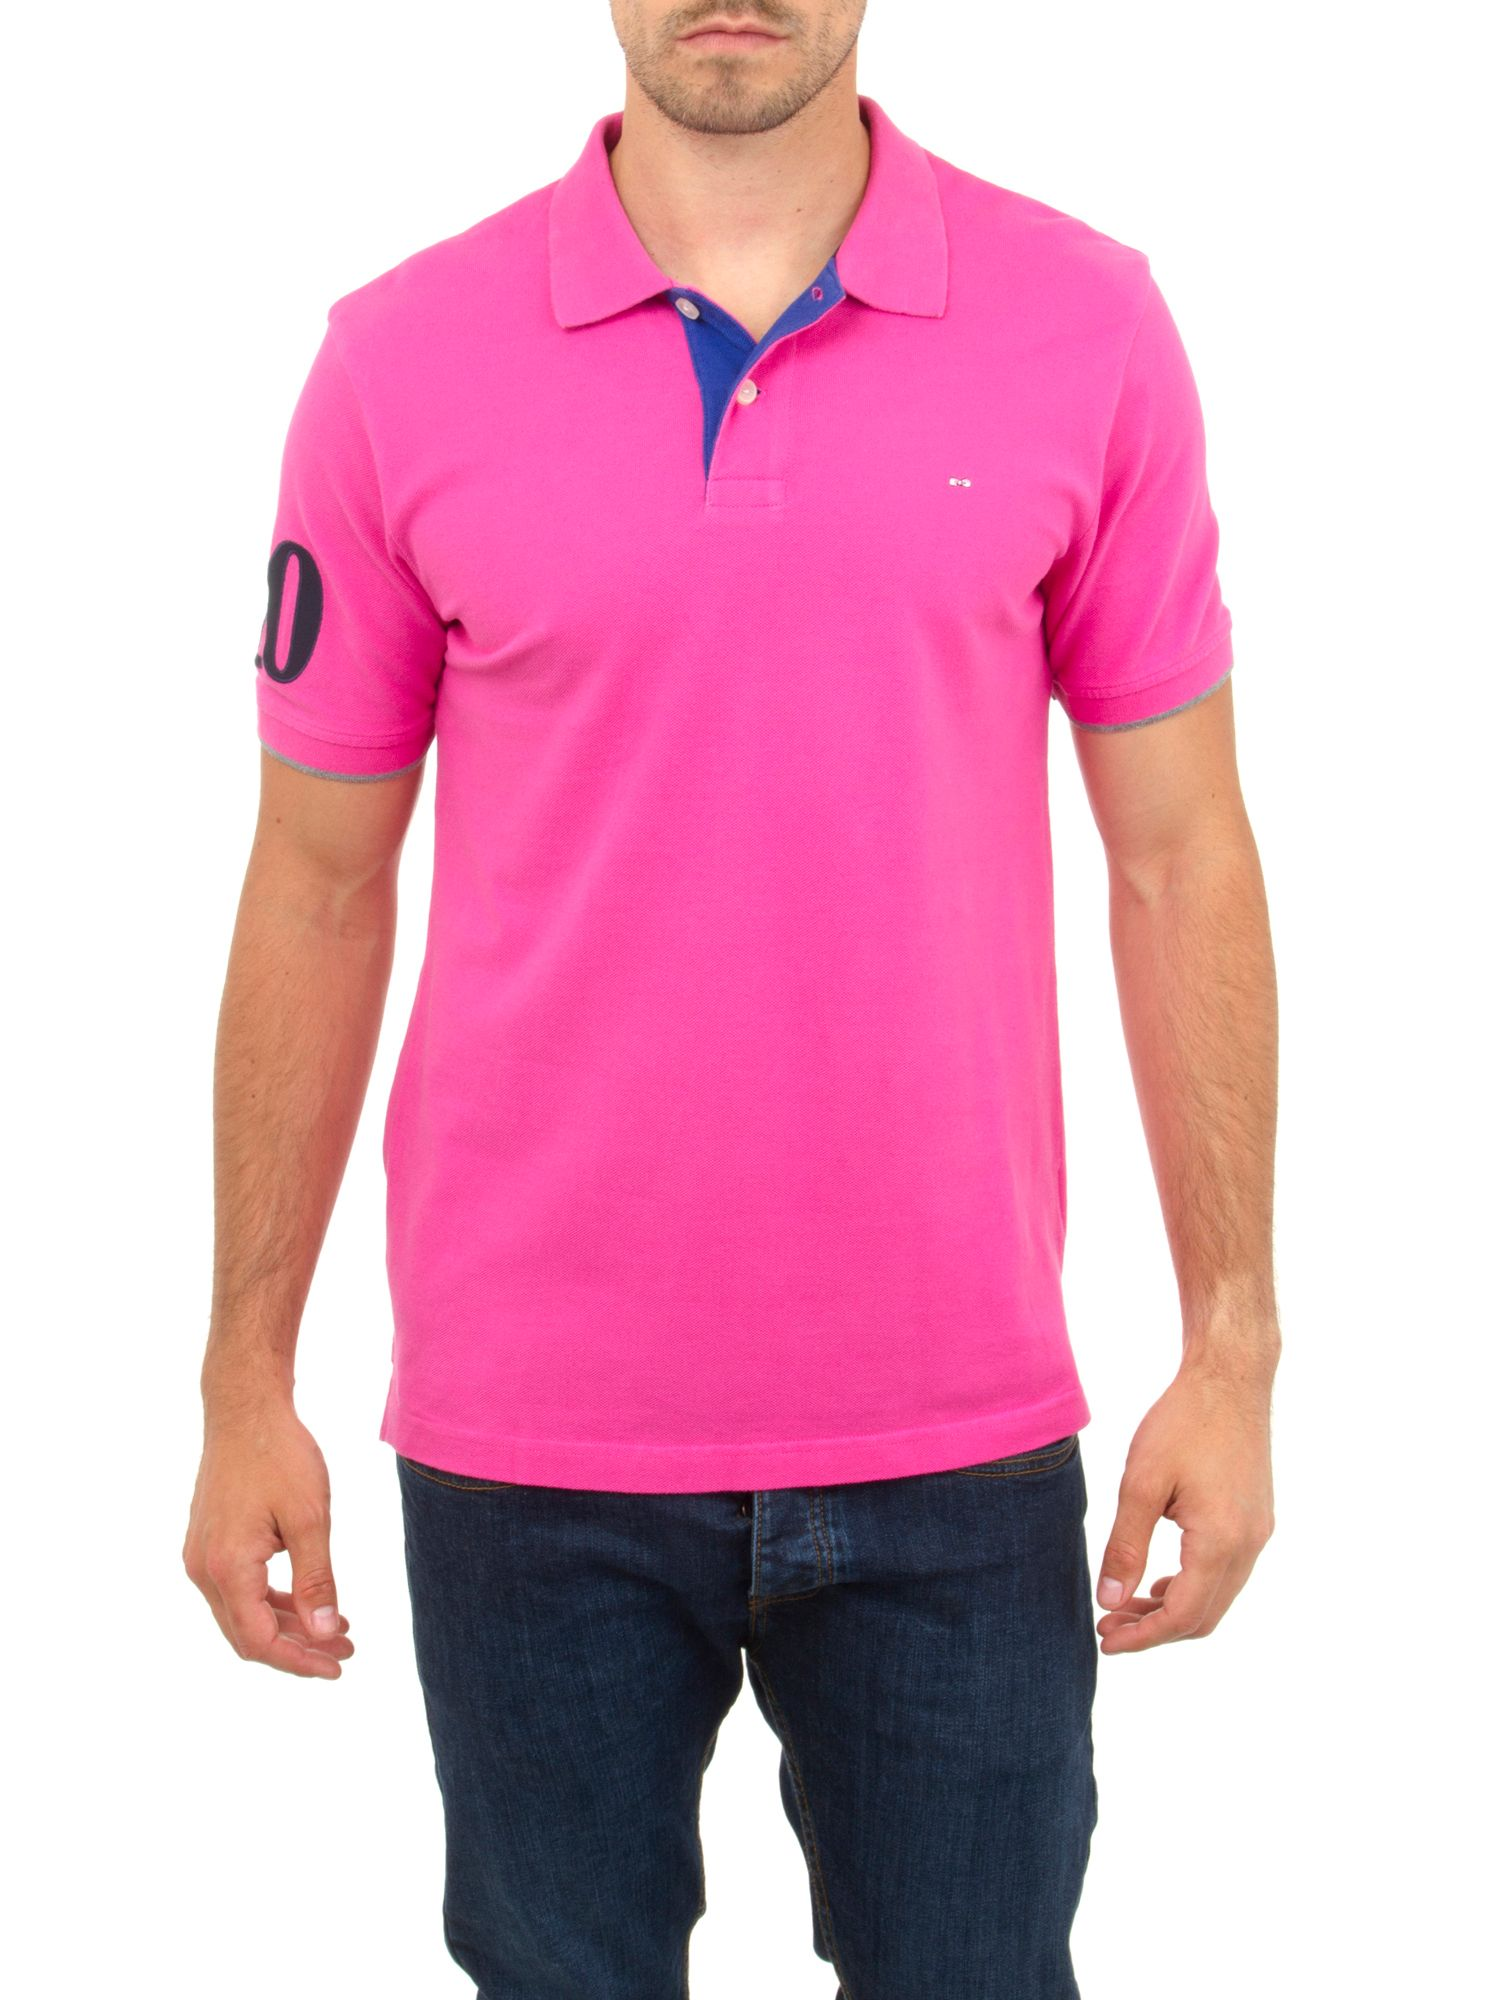 Tricolore polo shirt